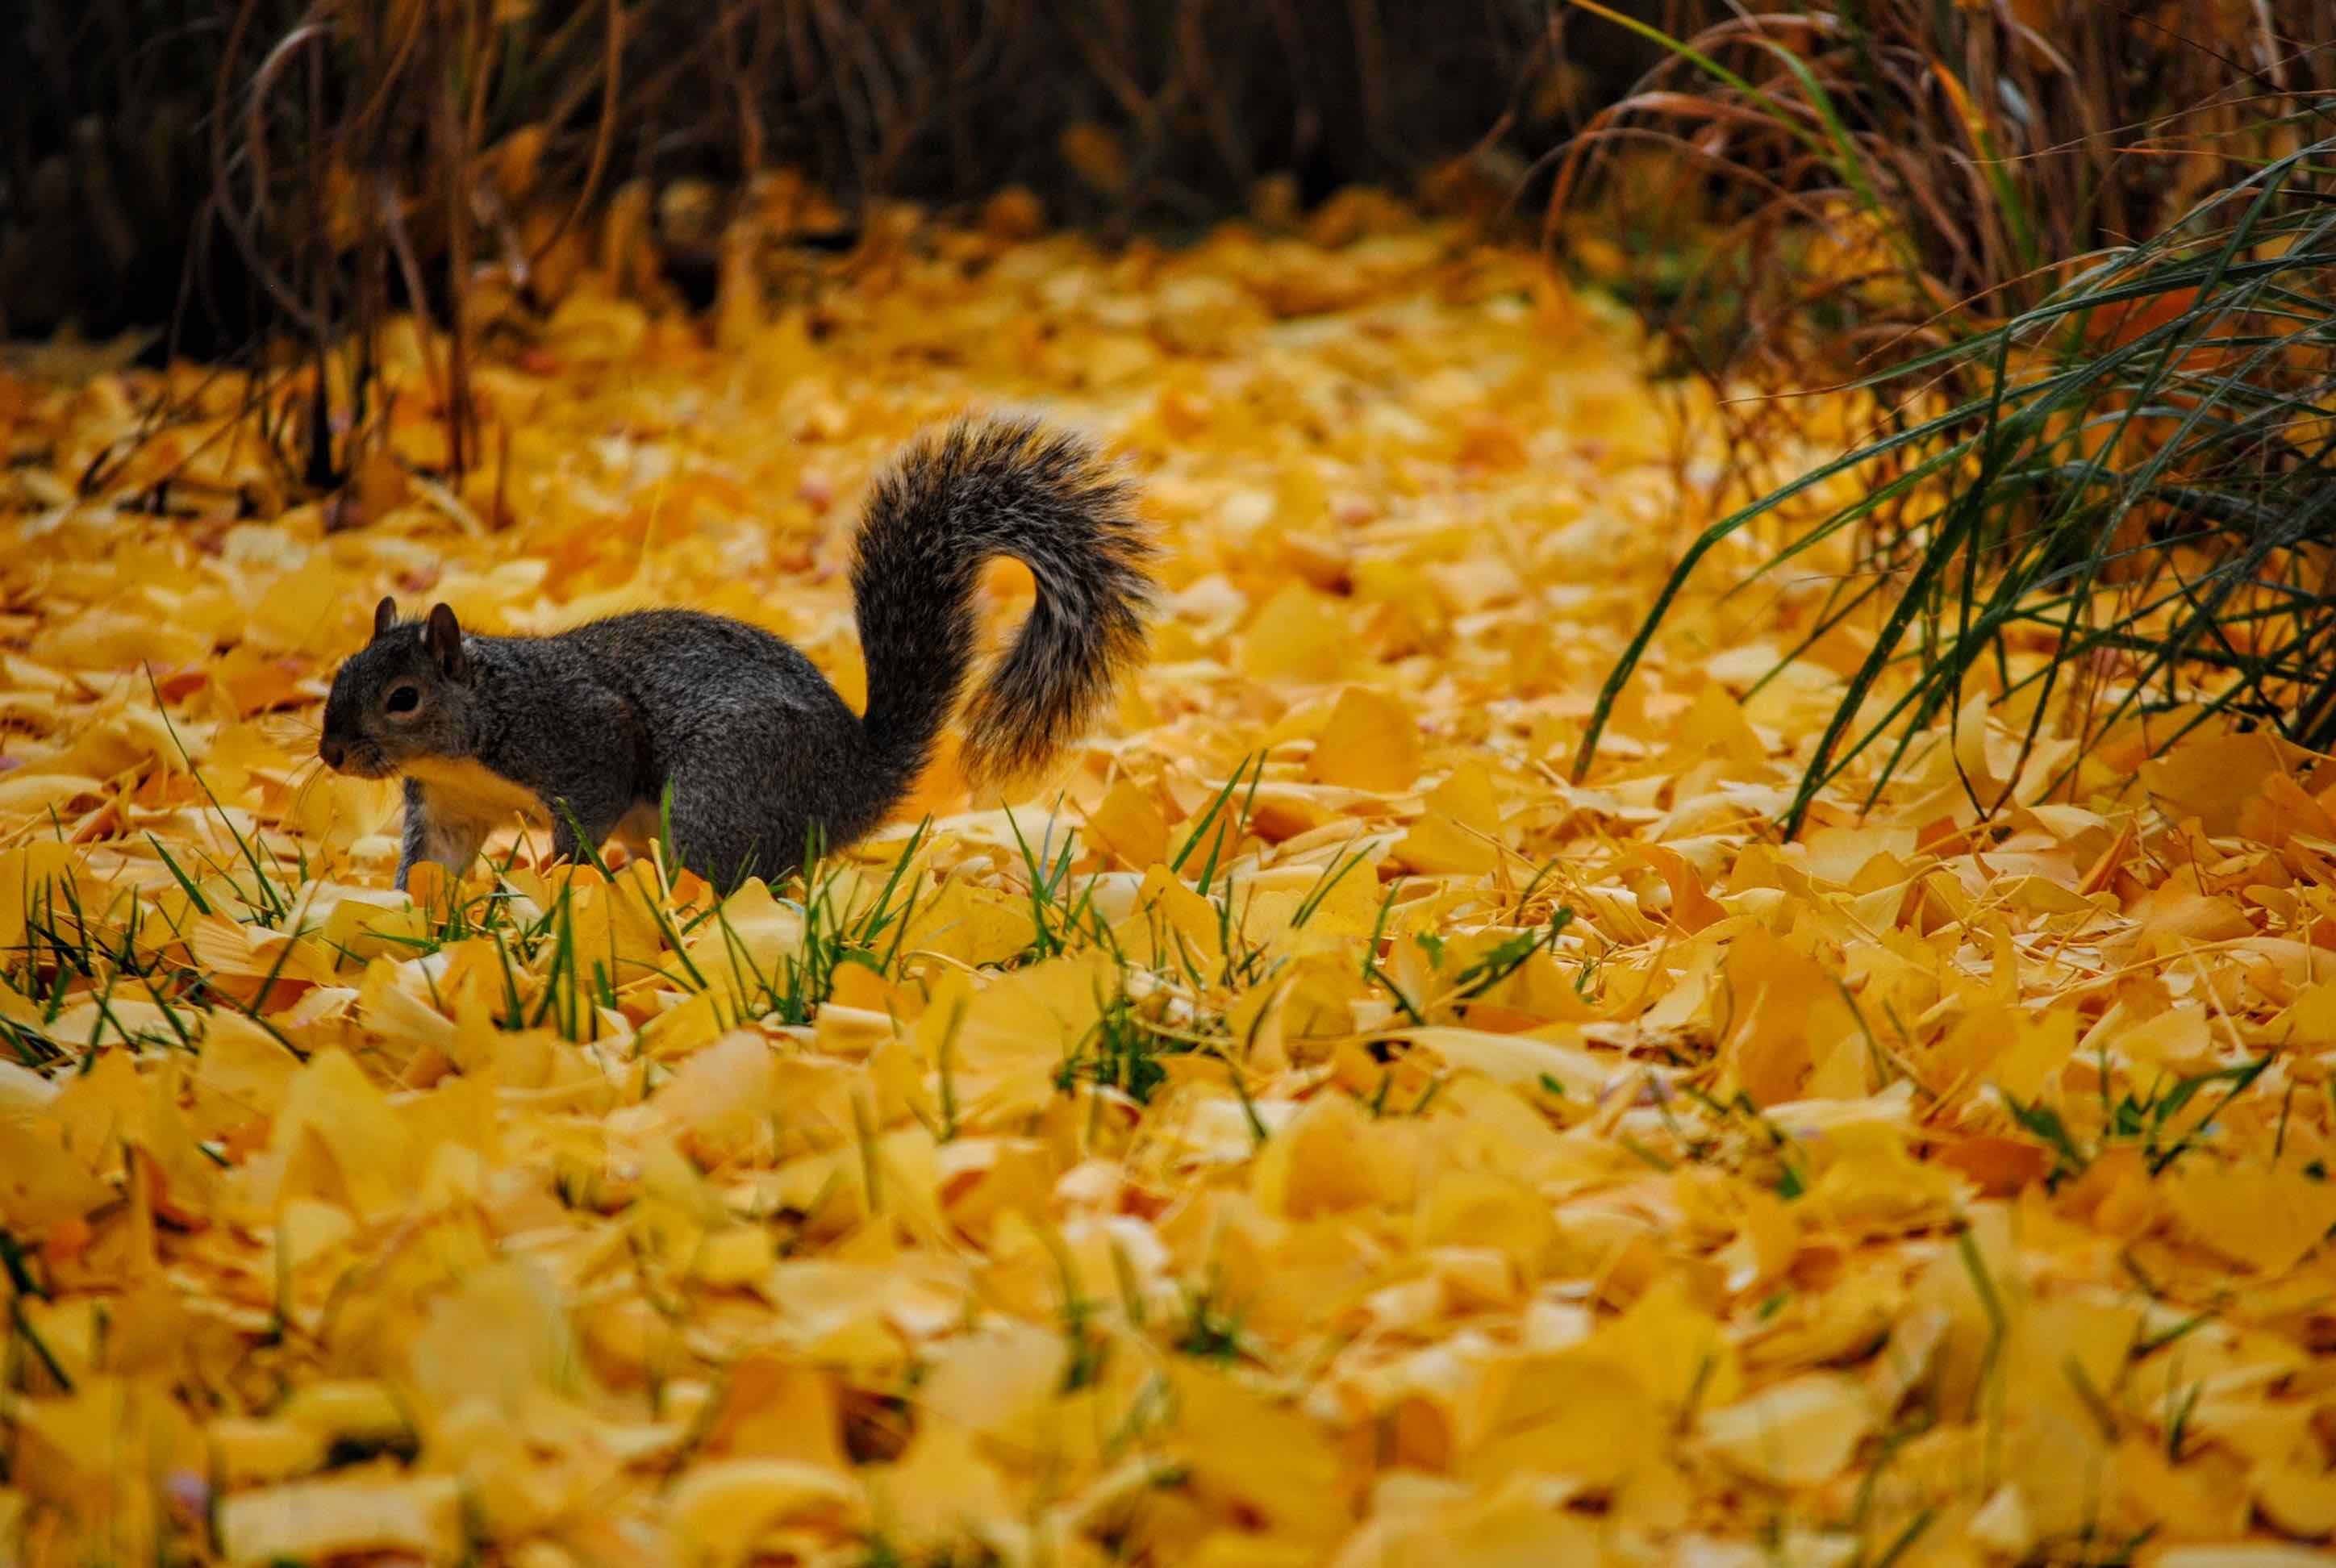 5 Lessons From a Squirrel